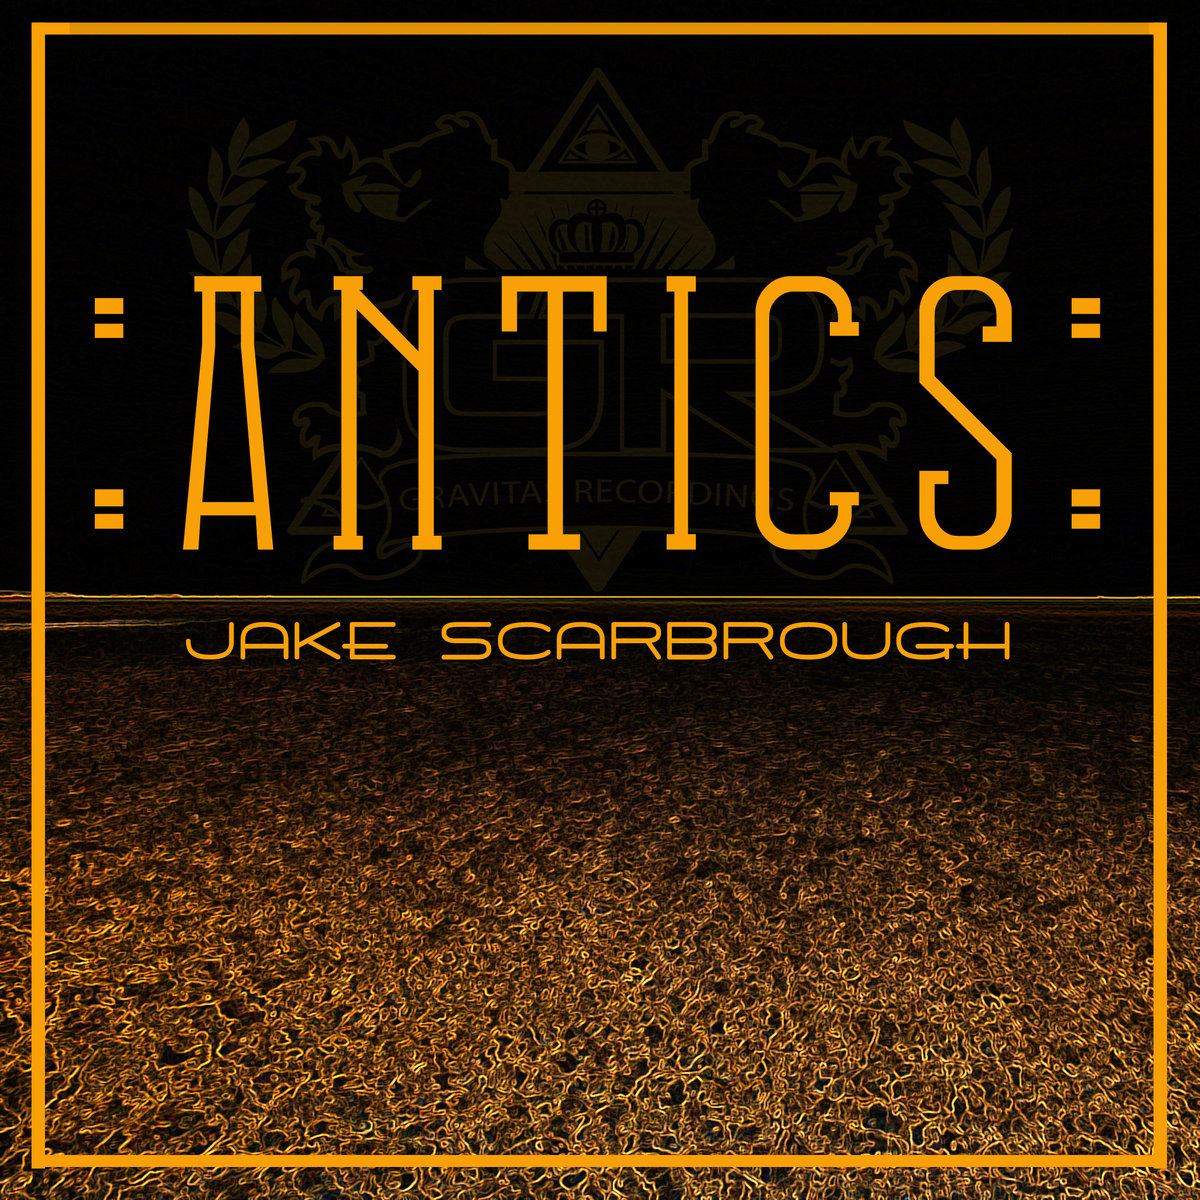 Jake Scarbrough - Radar Junkie @ 'Antics' album (Austin)